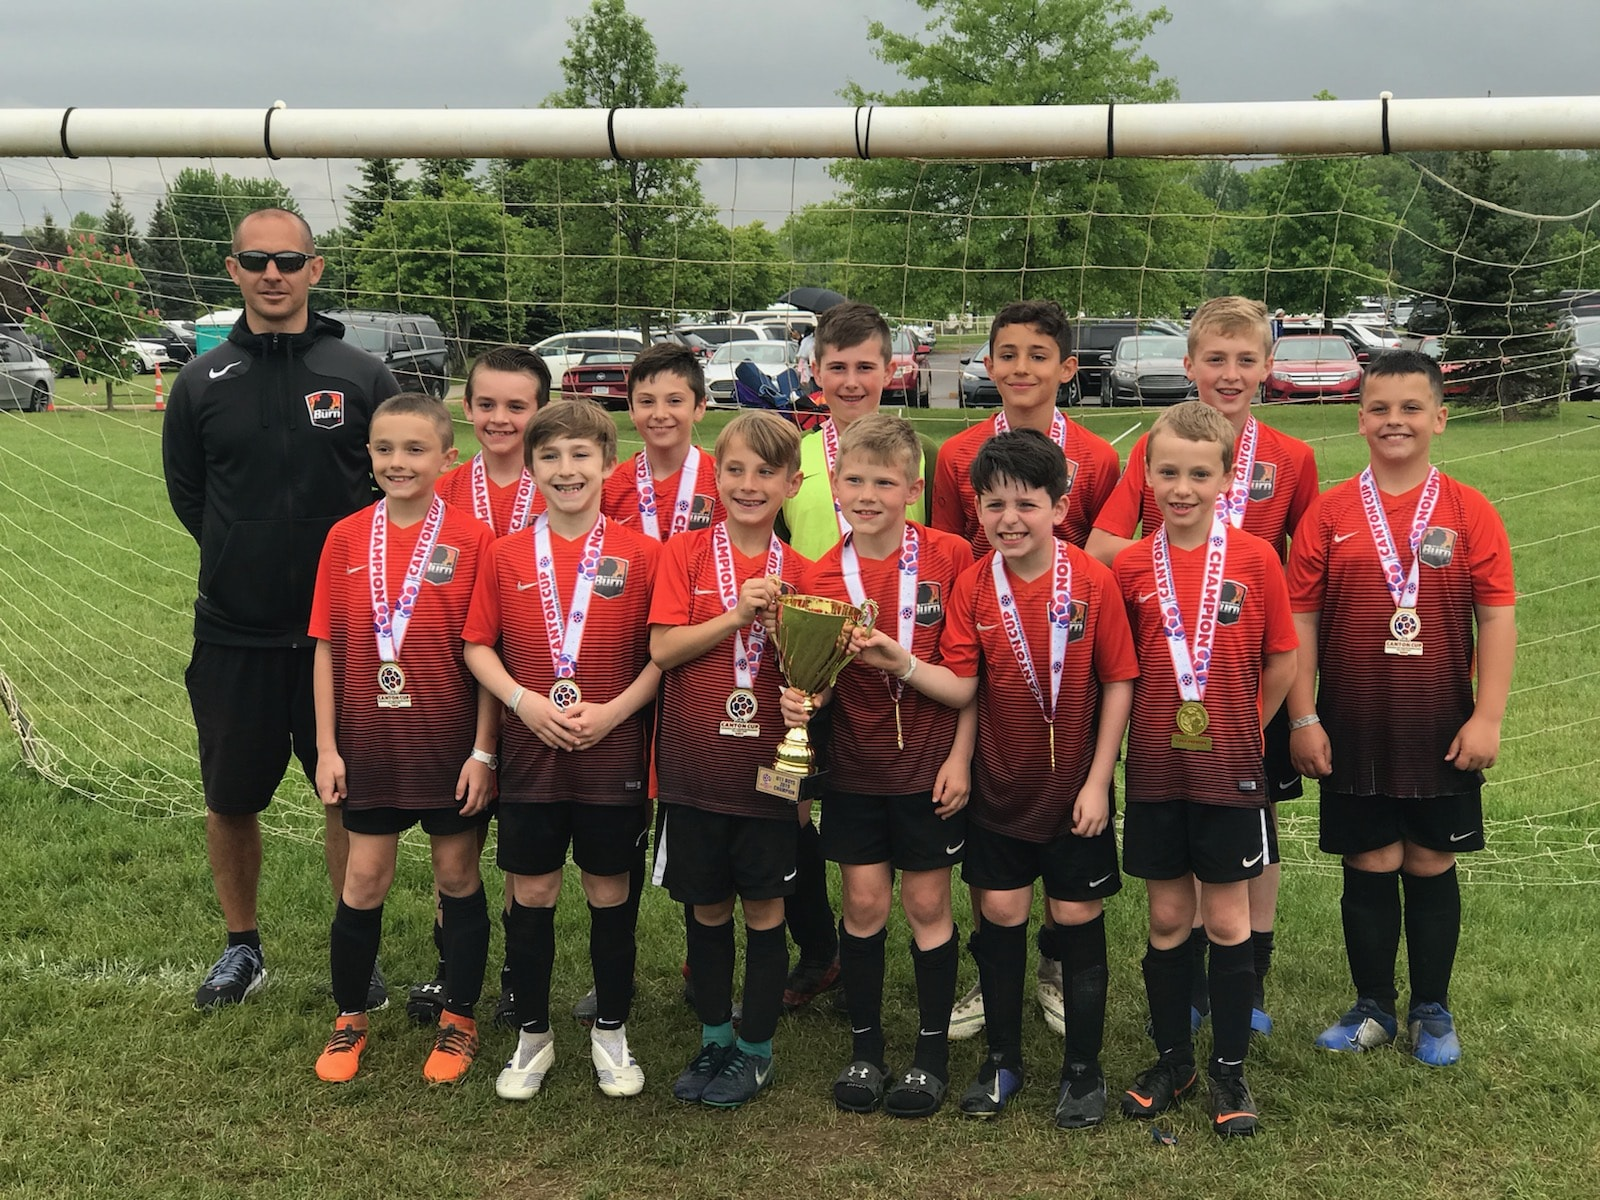 09 Black U10 Boys are 2019 Canton Cup Champions!